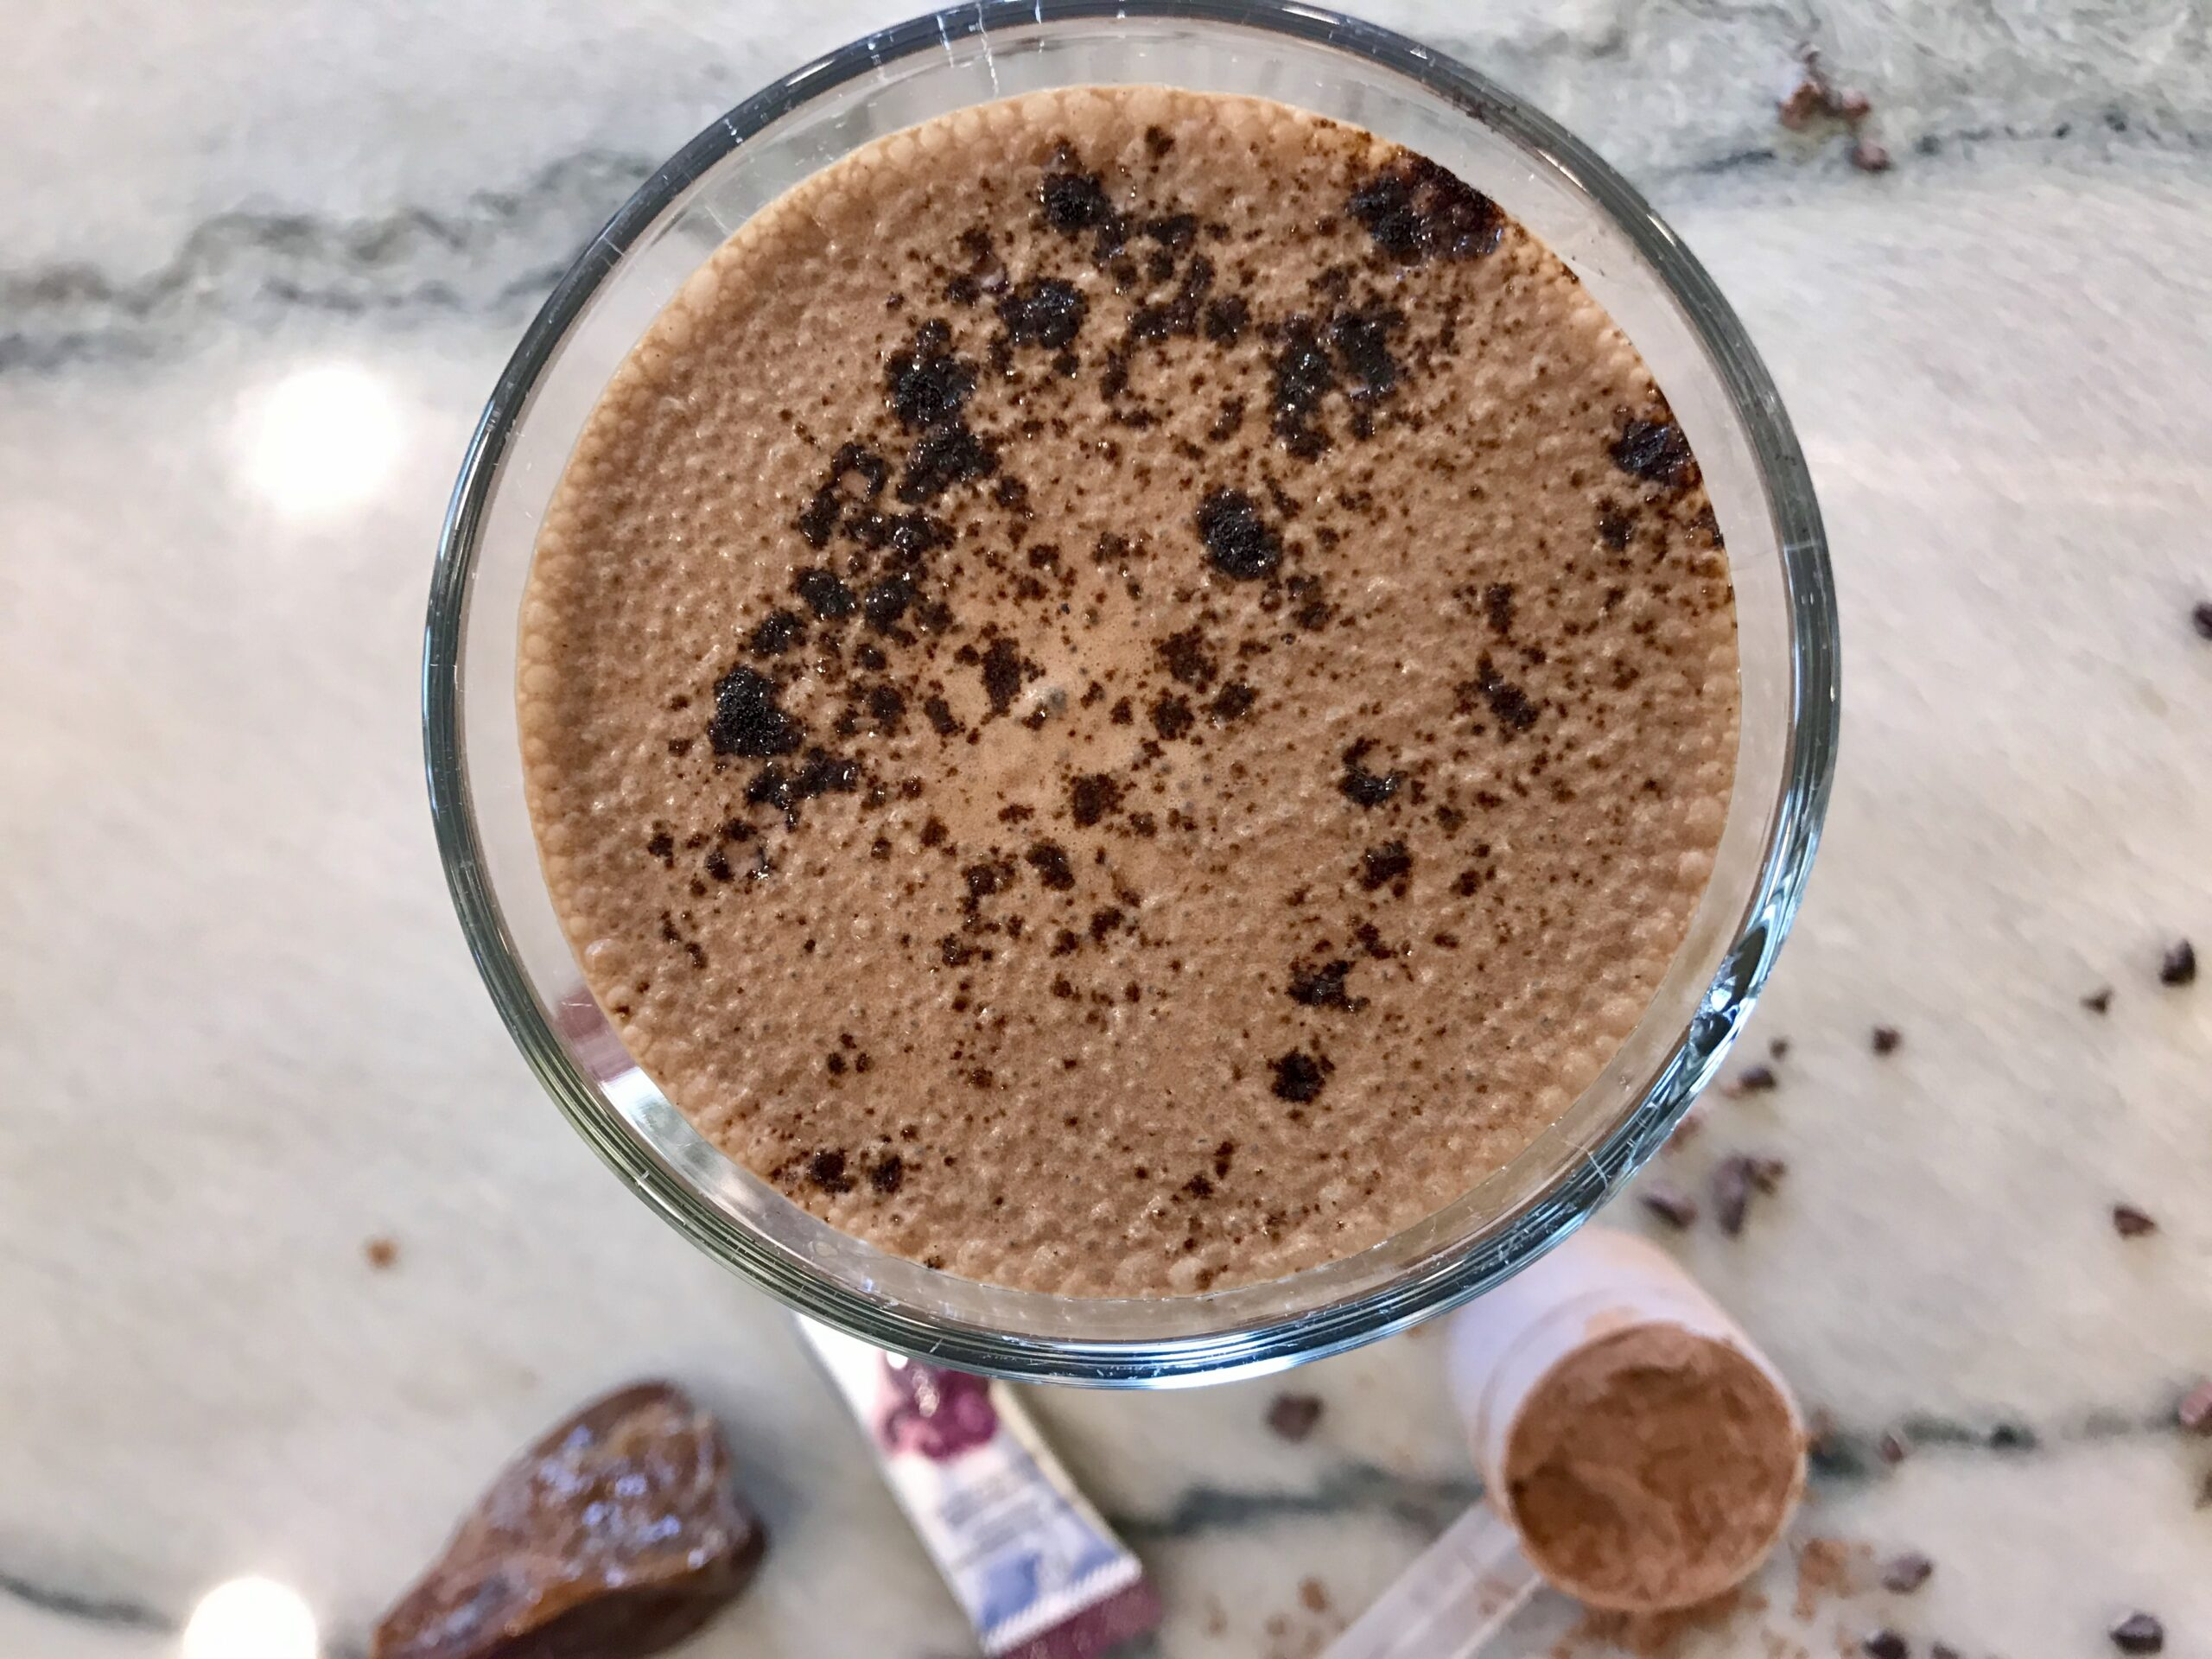 CHOCOLATE COFFEE PROTEIN SHAKE